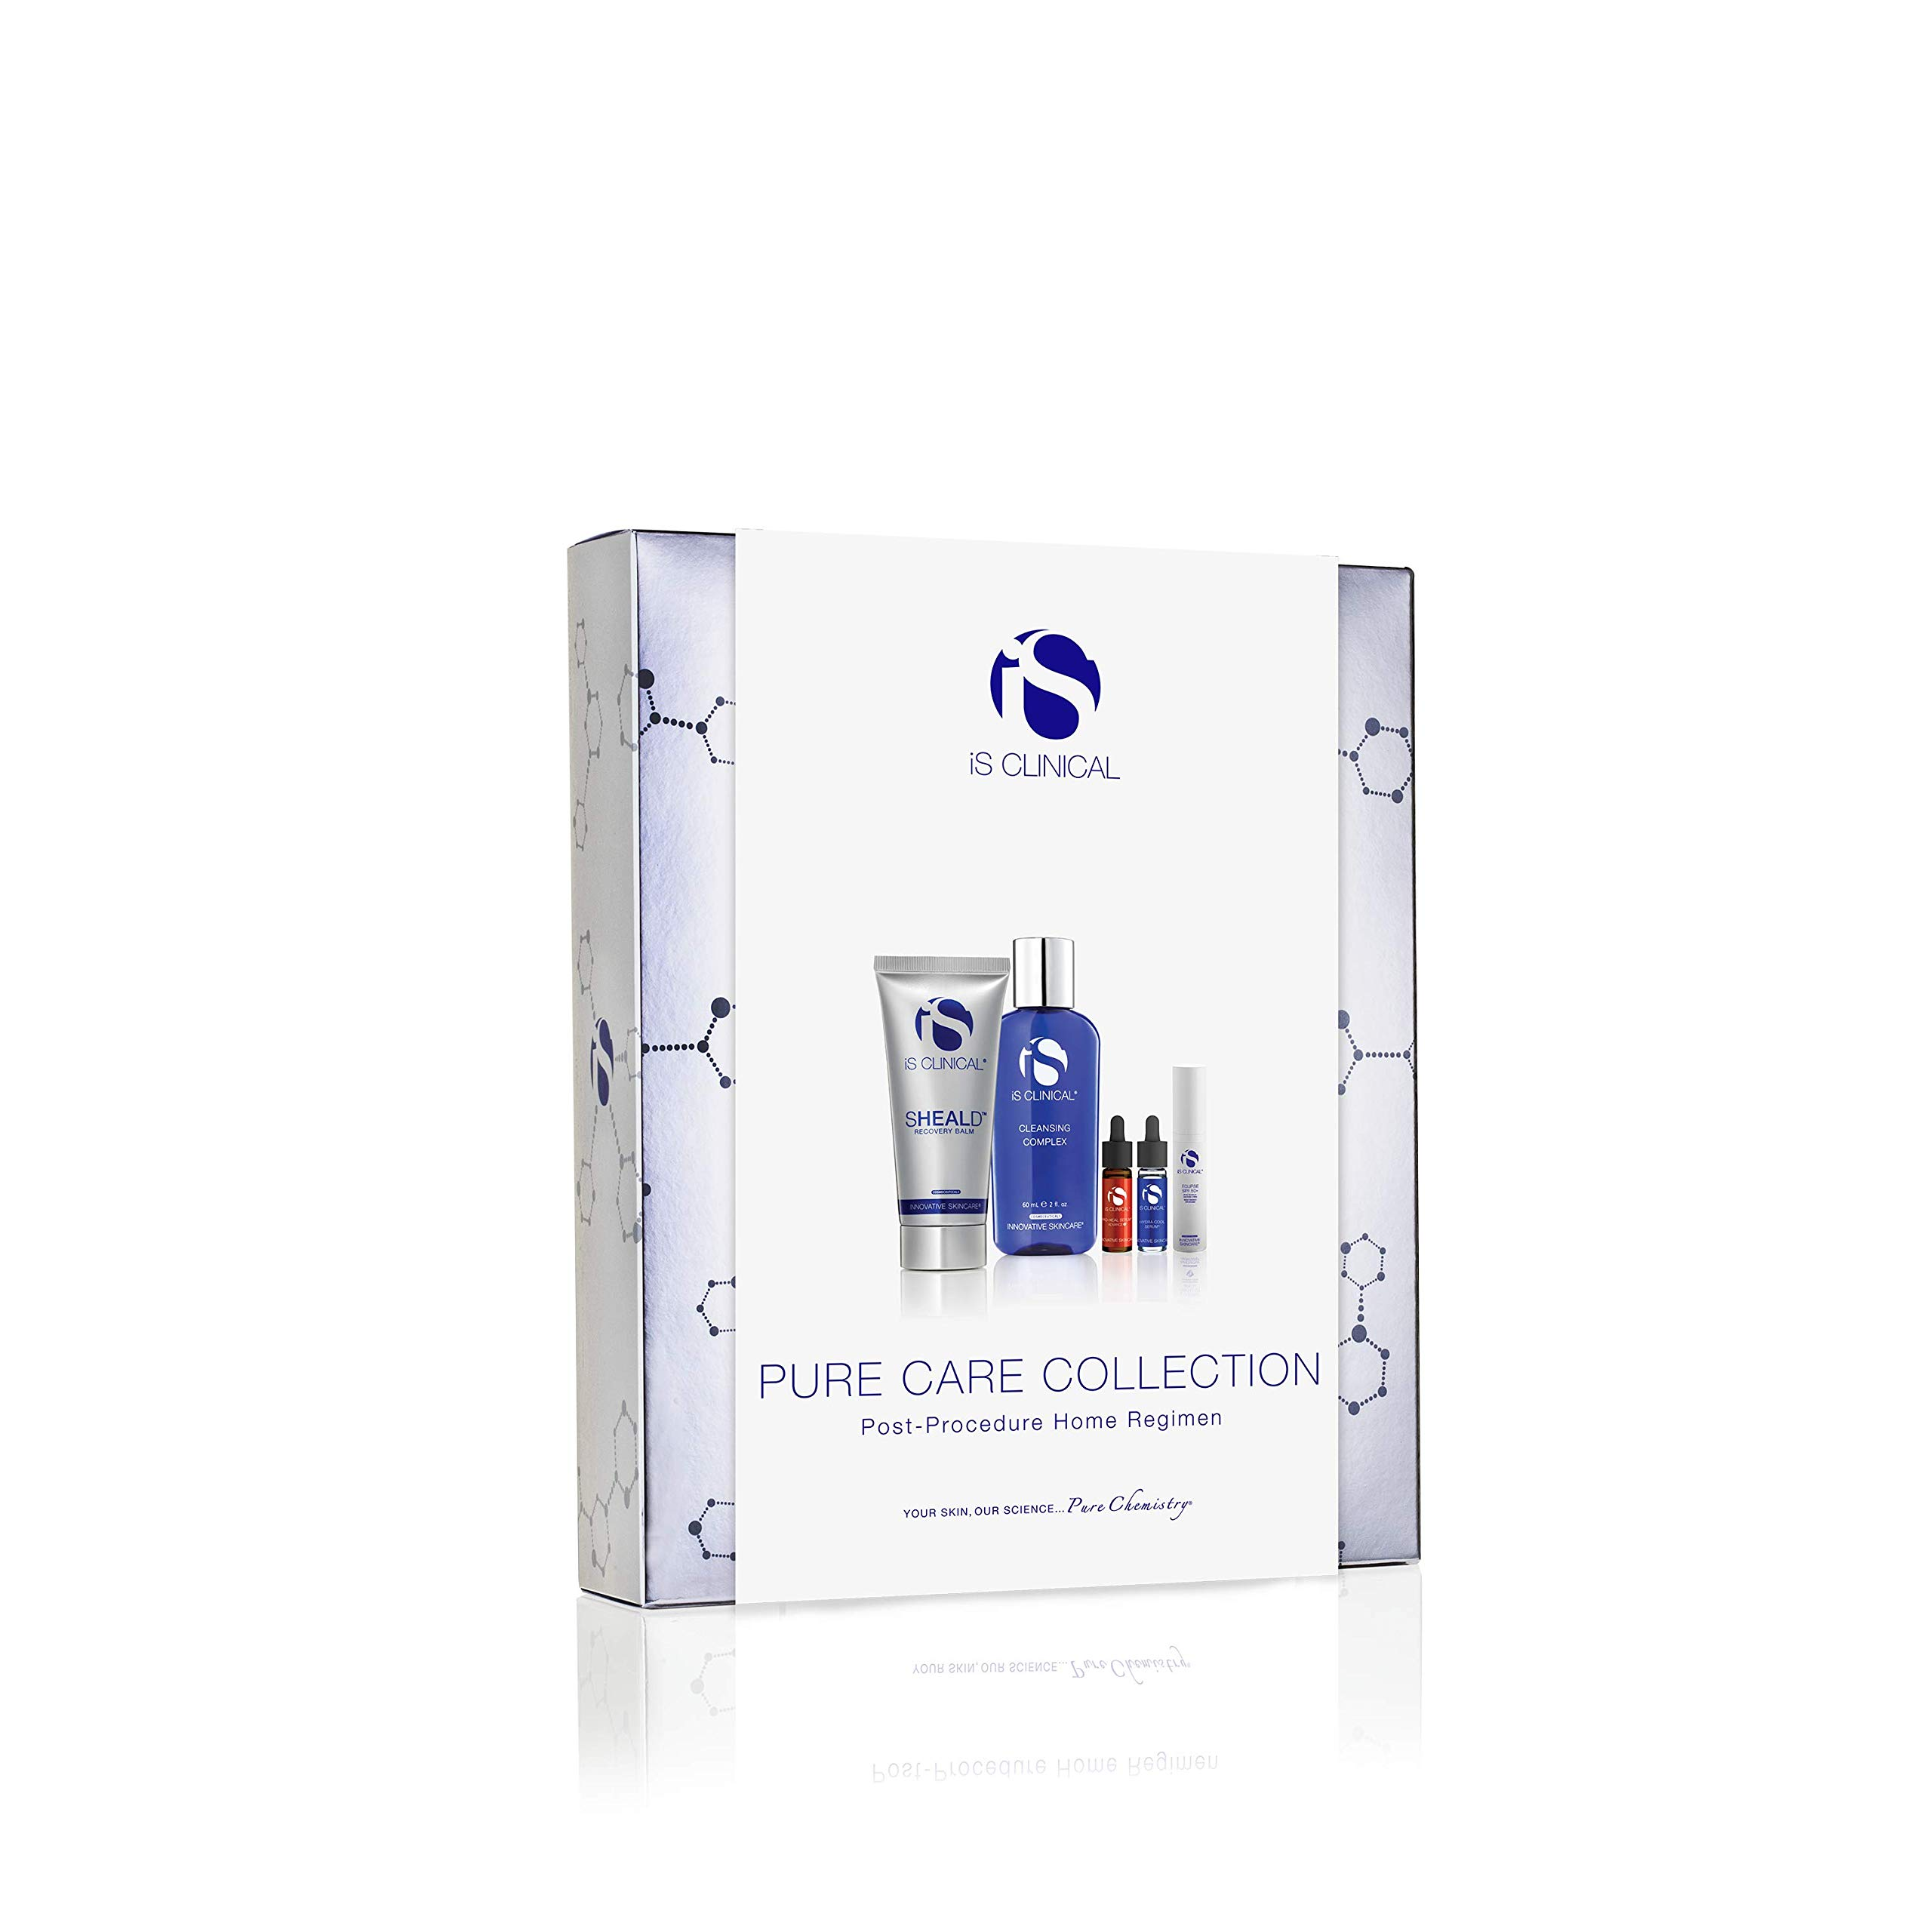 iS CLINICAL  Post-Procedure Kit System